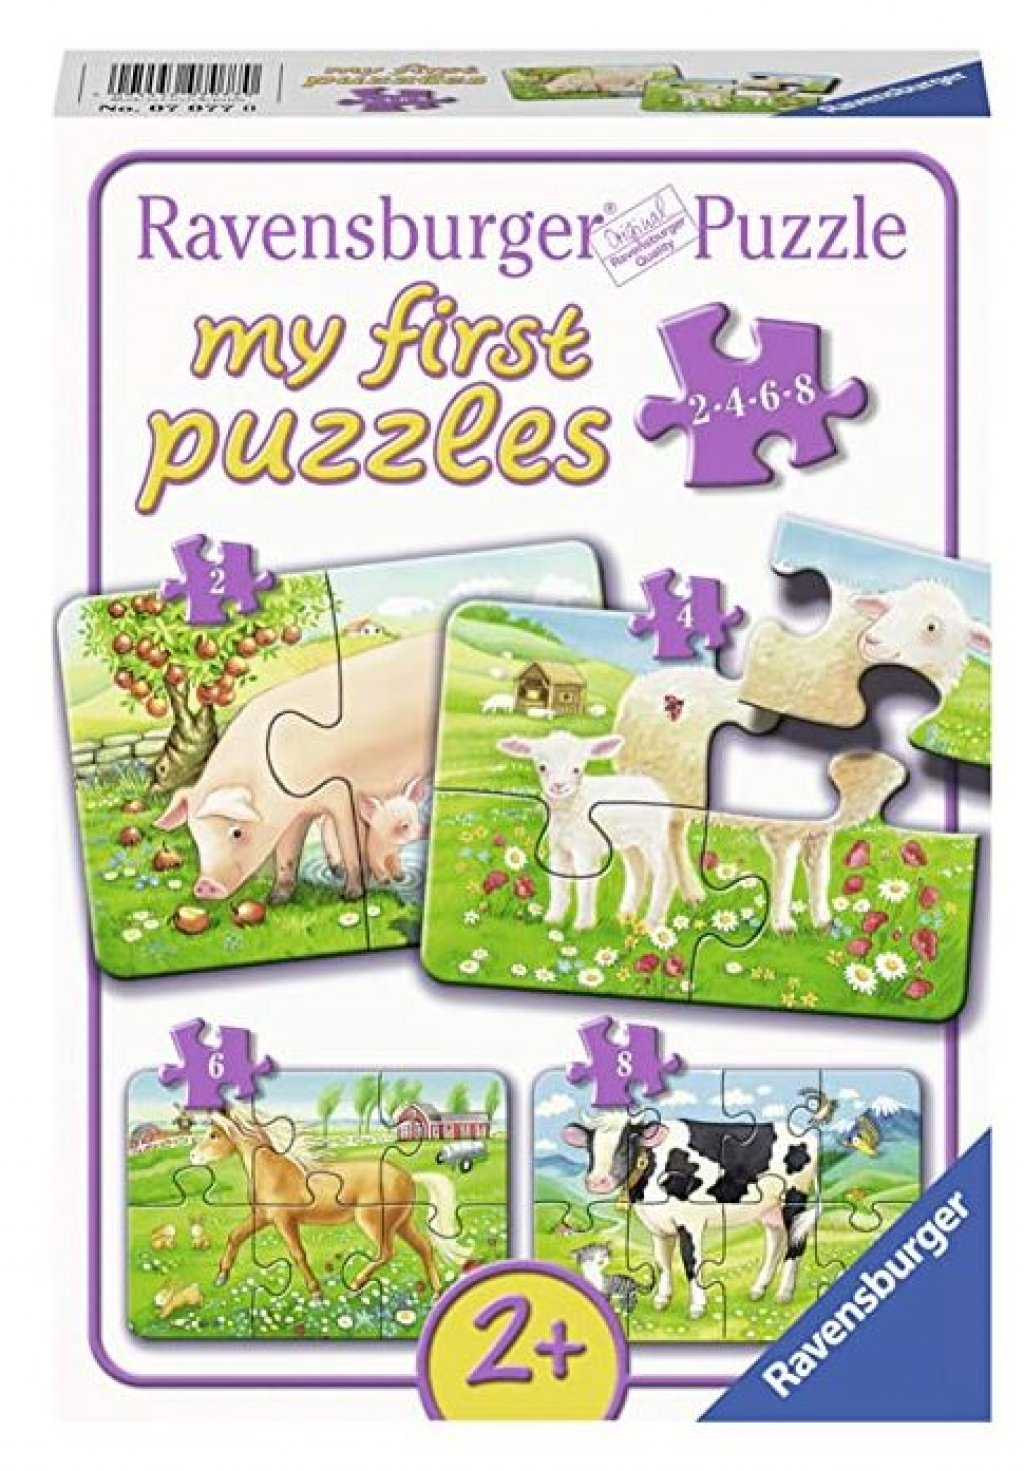 Unsere Lieblingstiere - Ravensburger My first puzzles